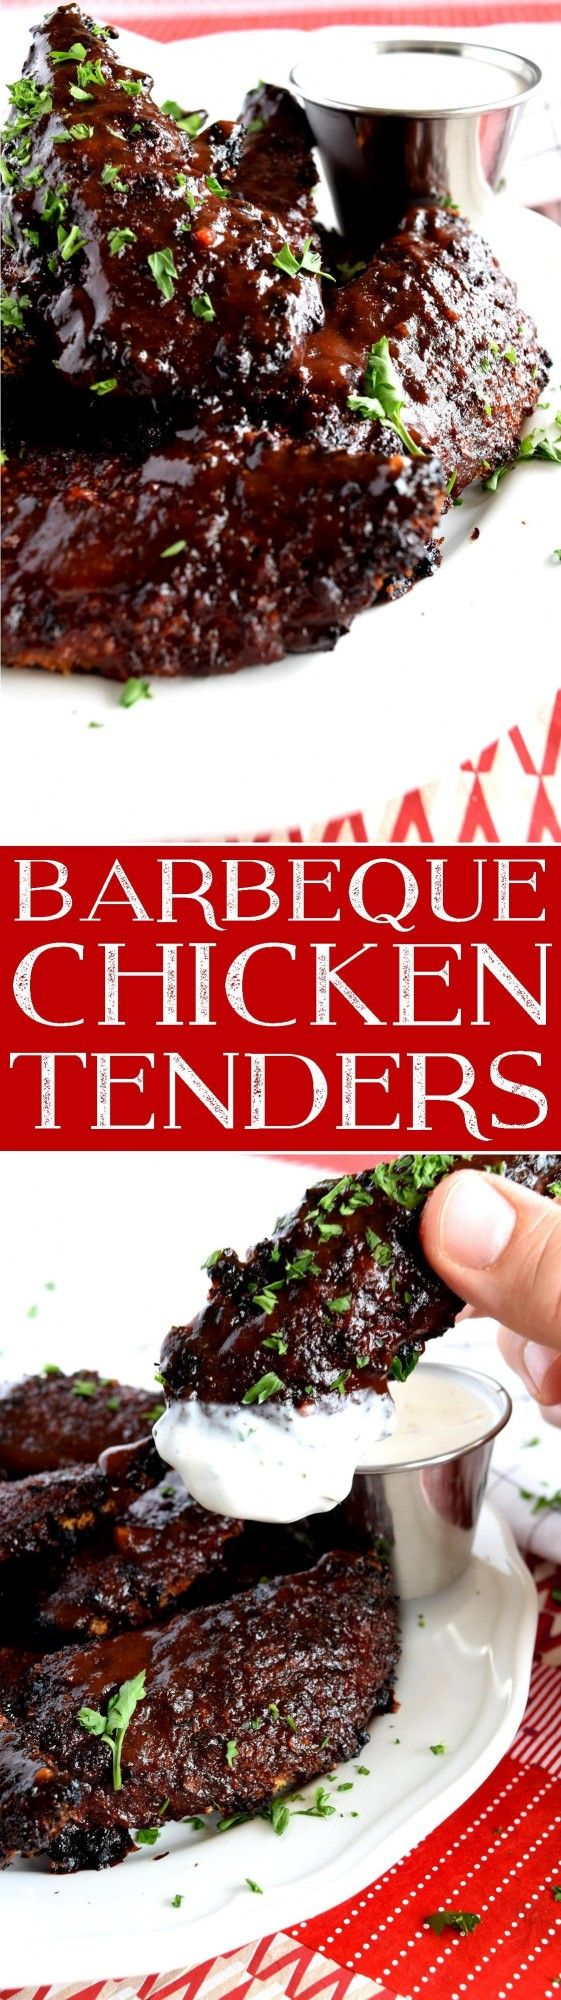 If you're looking for a fast Barbeque Chicken fix, this recipe is for you! Three ingredients and 45 minutes is all you need – how's that for cheap and efficient? Look out weeknight dinner rush; Barbeque Chicken Tenders to the…